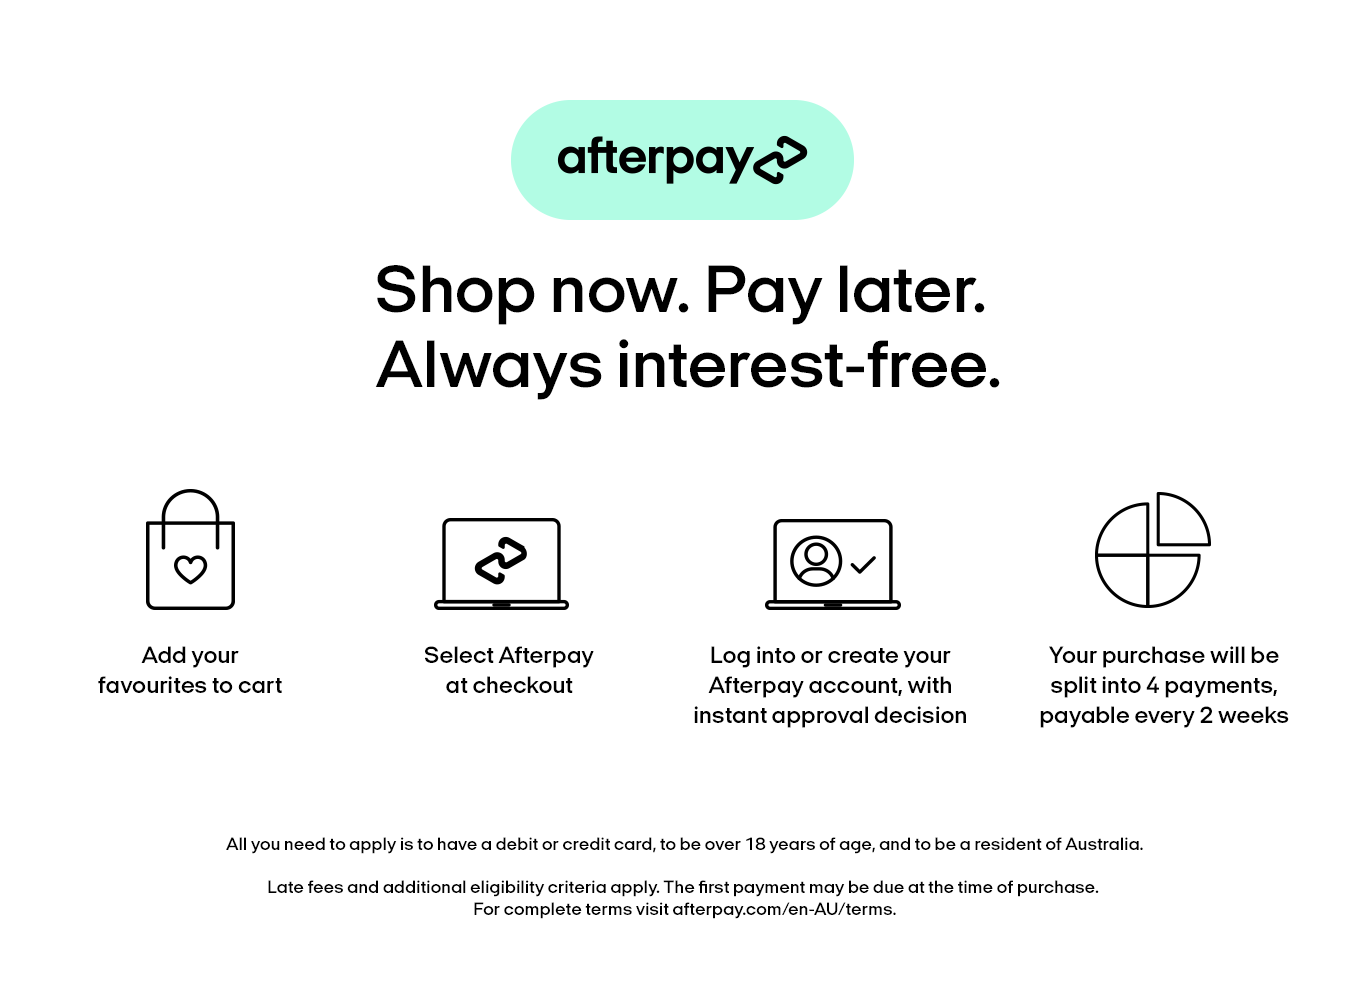 Afterpay info banner